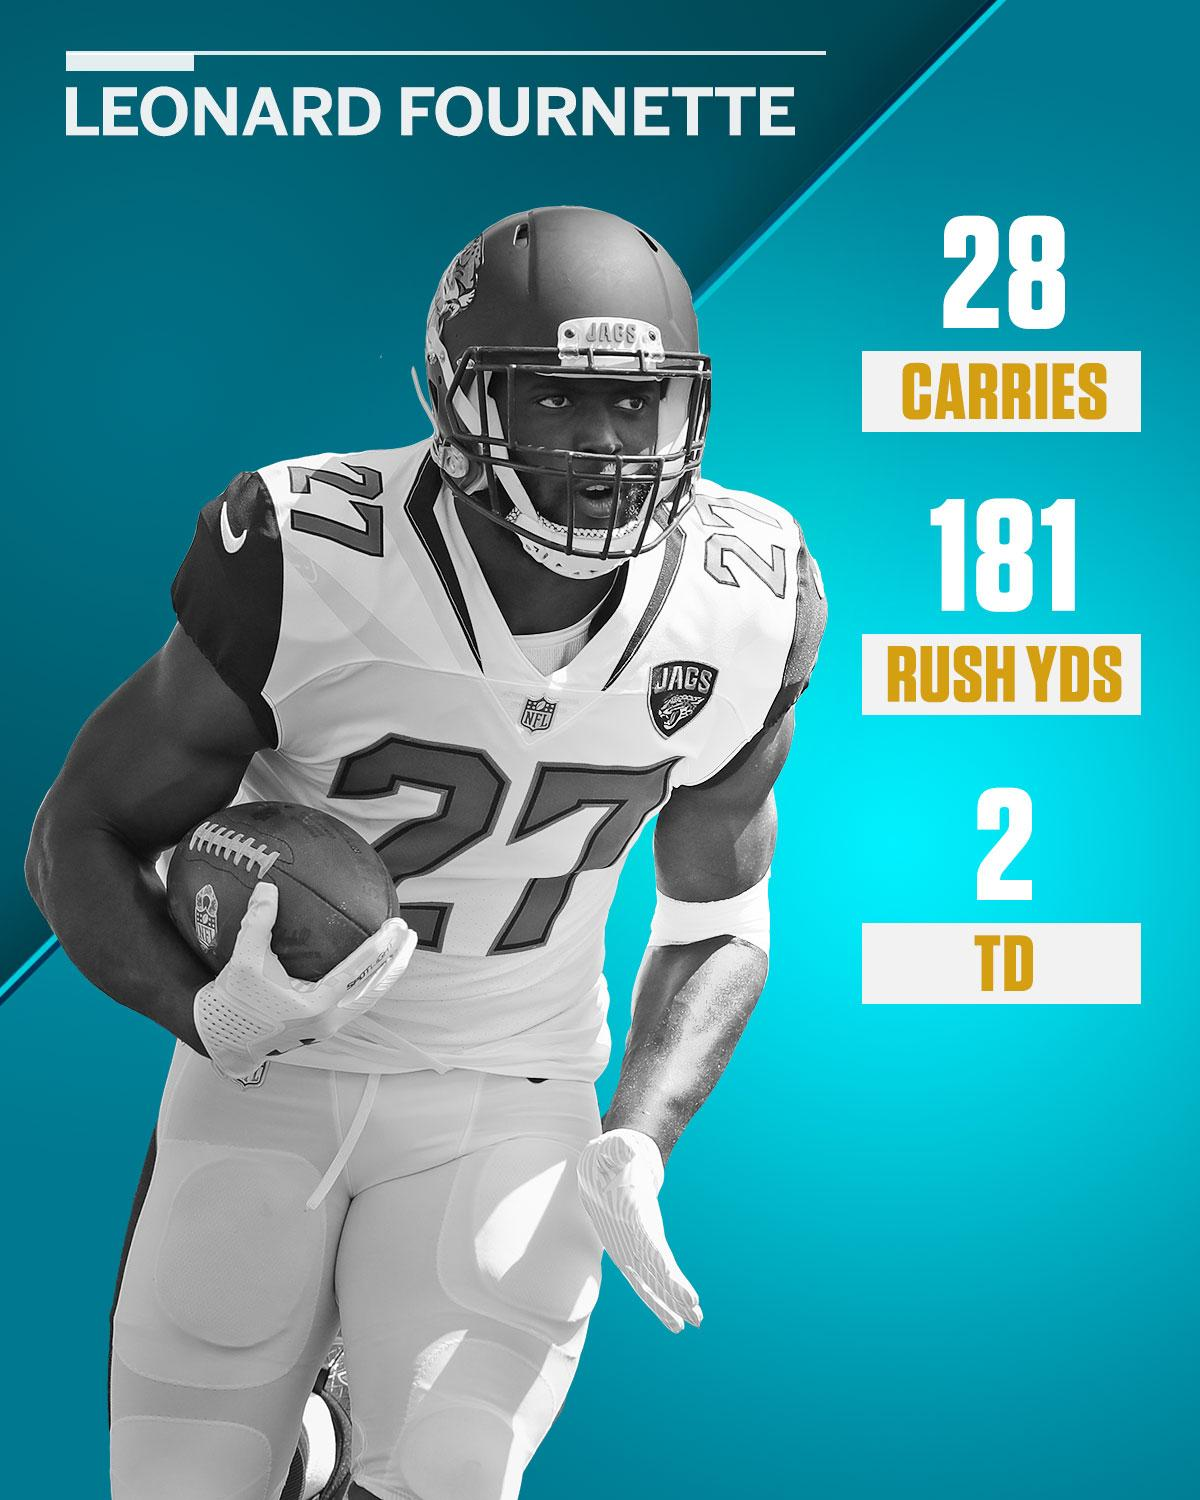 Leonard Fournette didn't look like a rookie out there today. https://t.co/aHS58tVliC